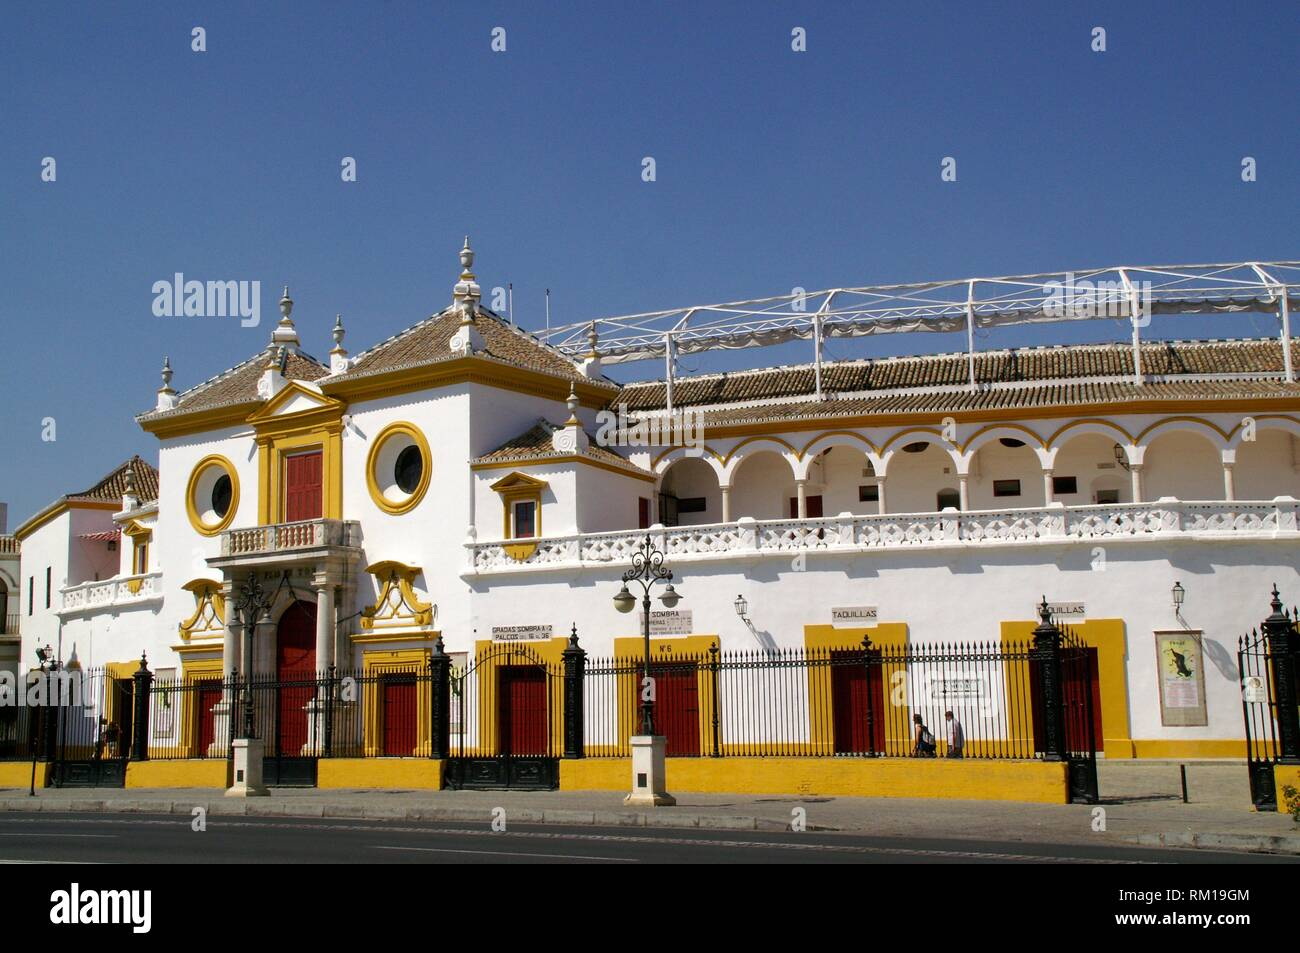 Sevilla (Spain). Exterior of the bullring of the Real Maestranza de Caballería de Sevilla. - Stock Image